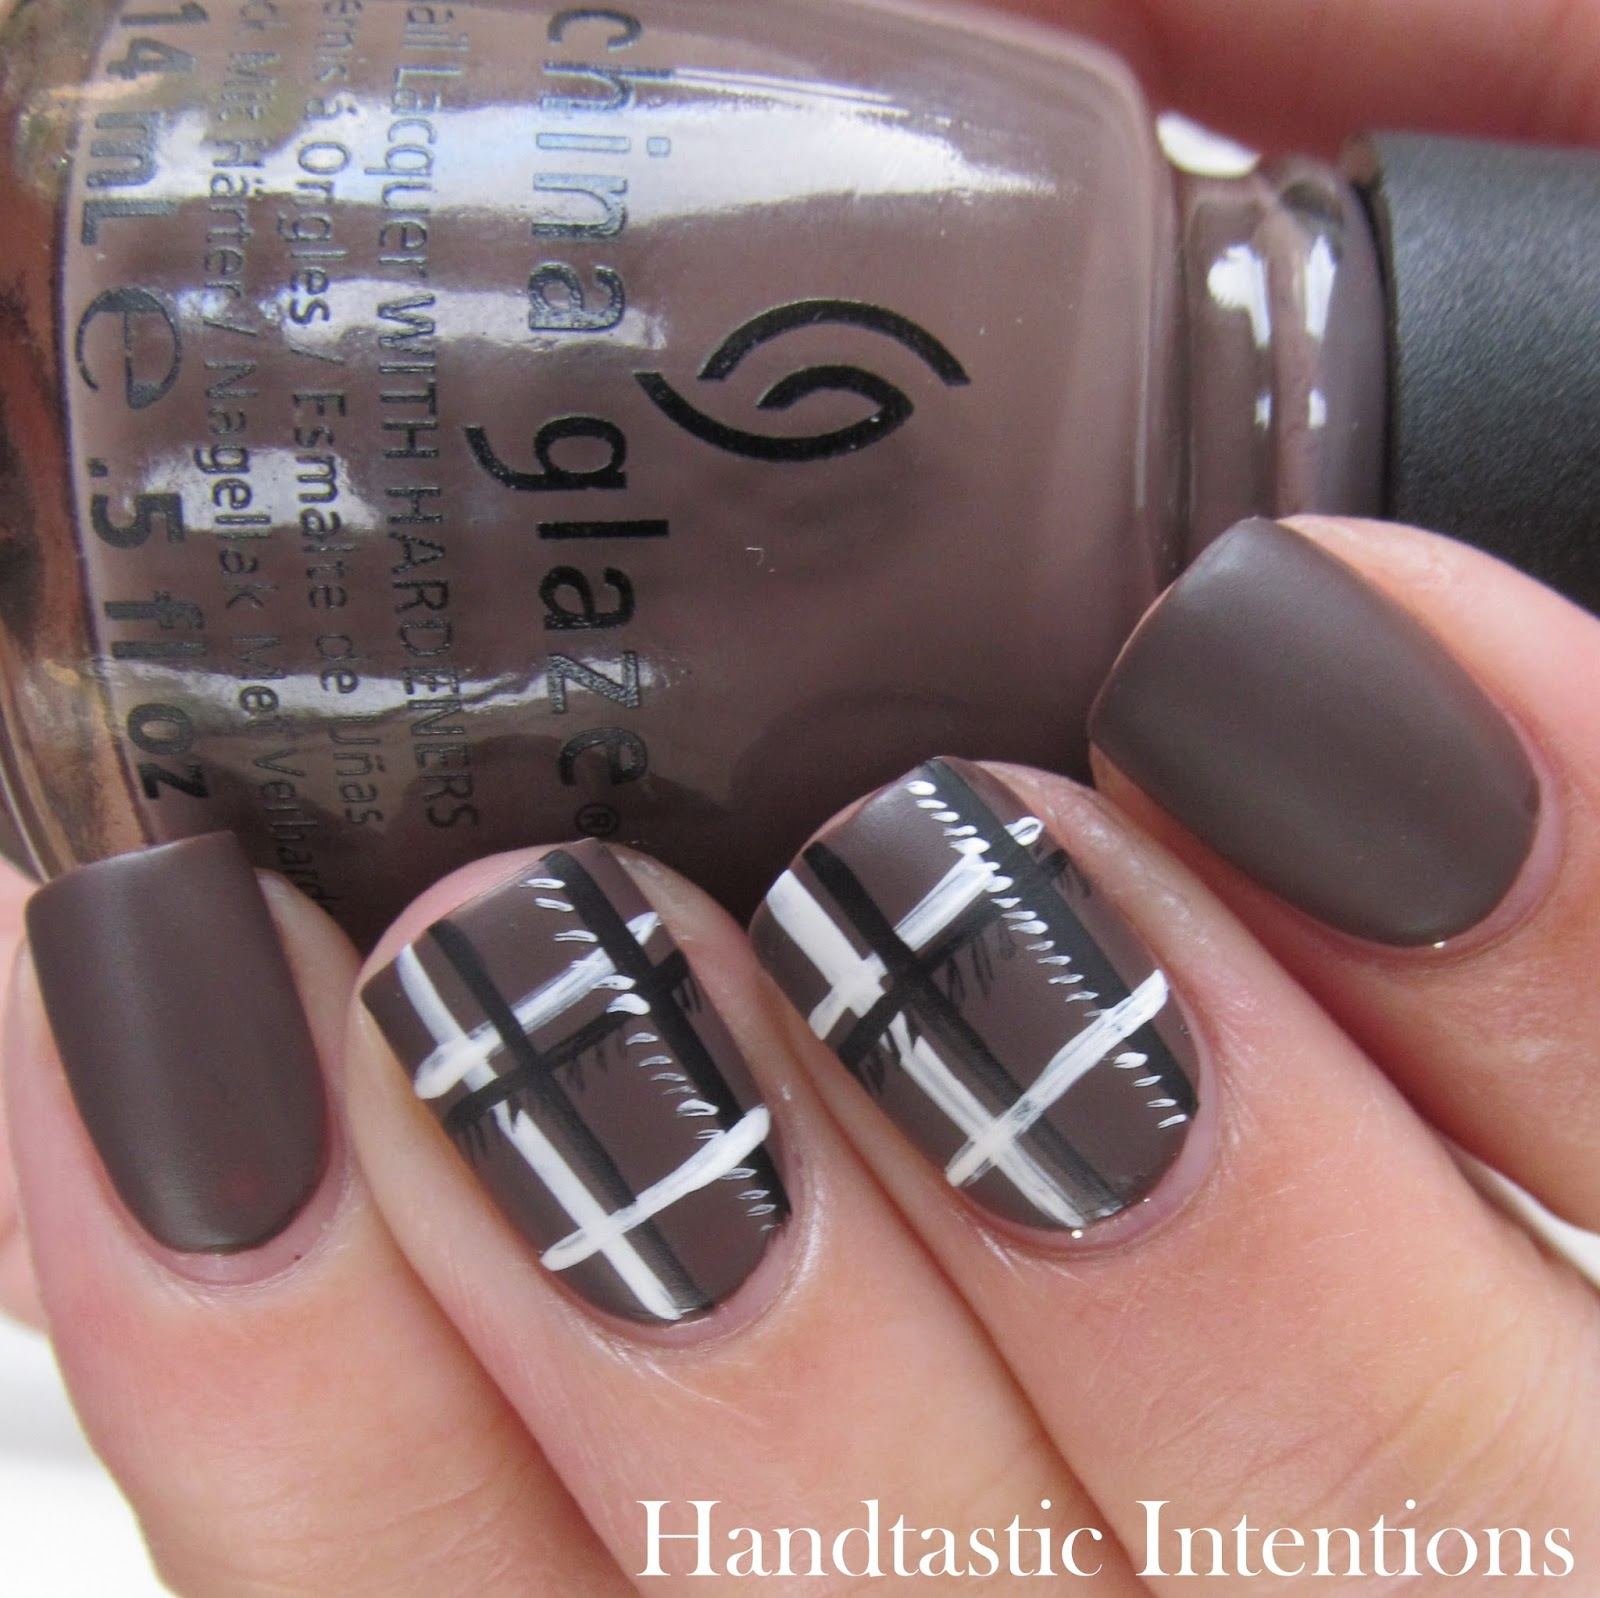 Handtastic Intentions: Nail Art: #31DC2014 Day 25 Fashion Inspired